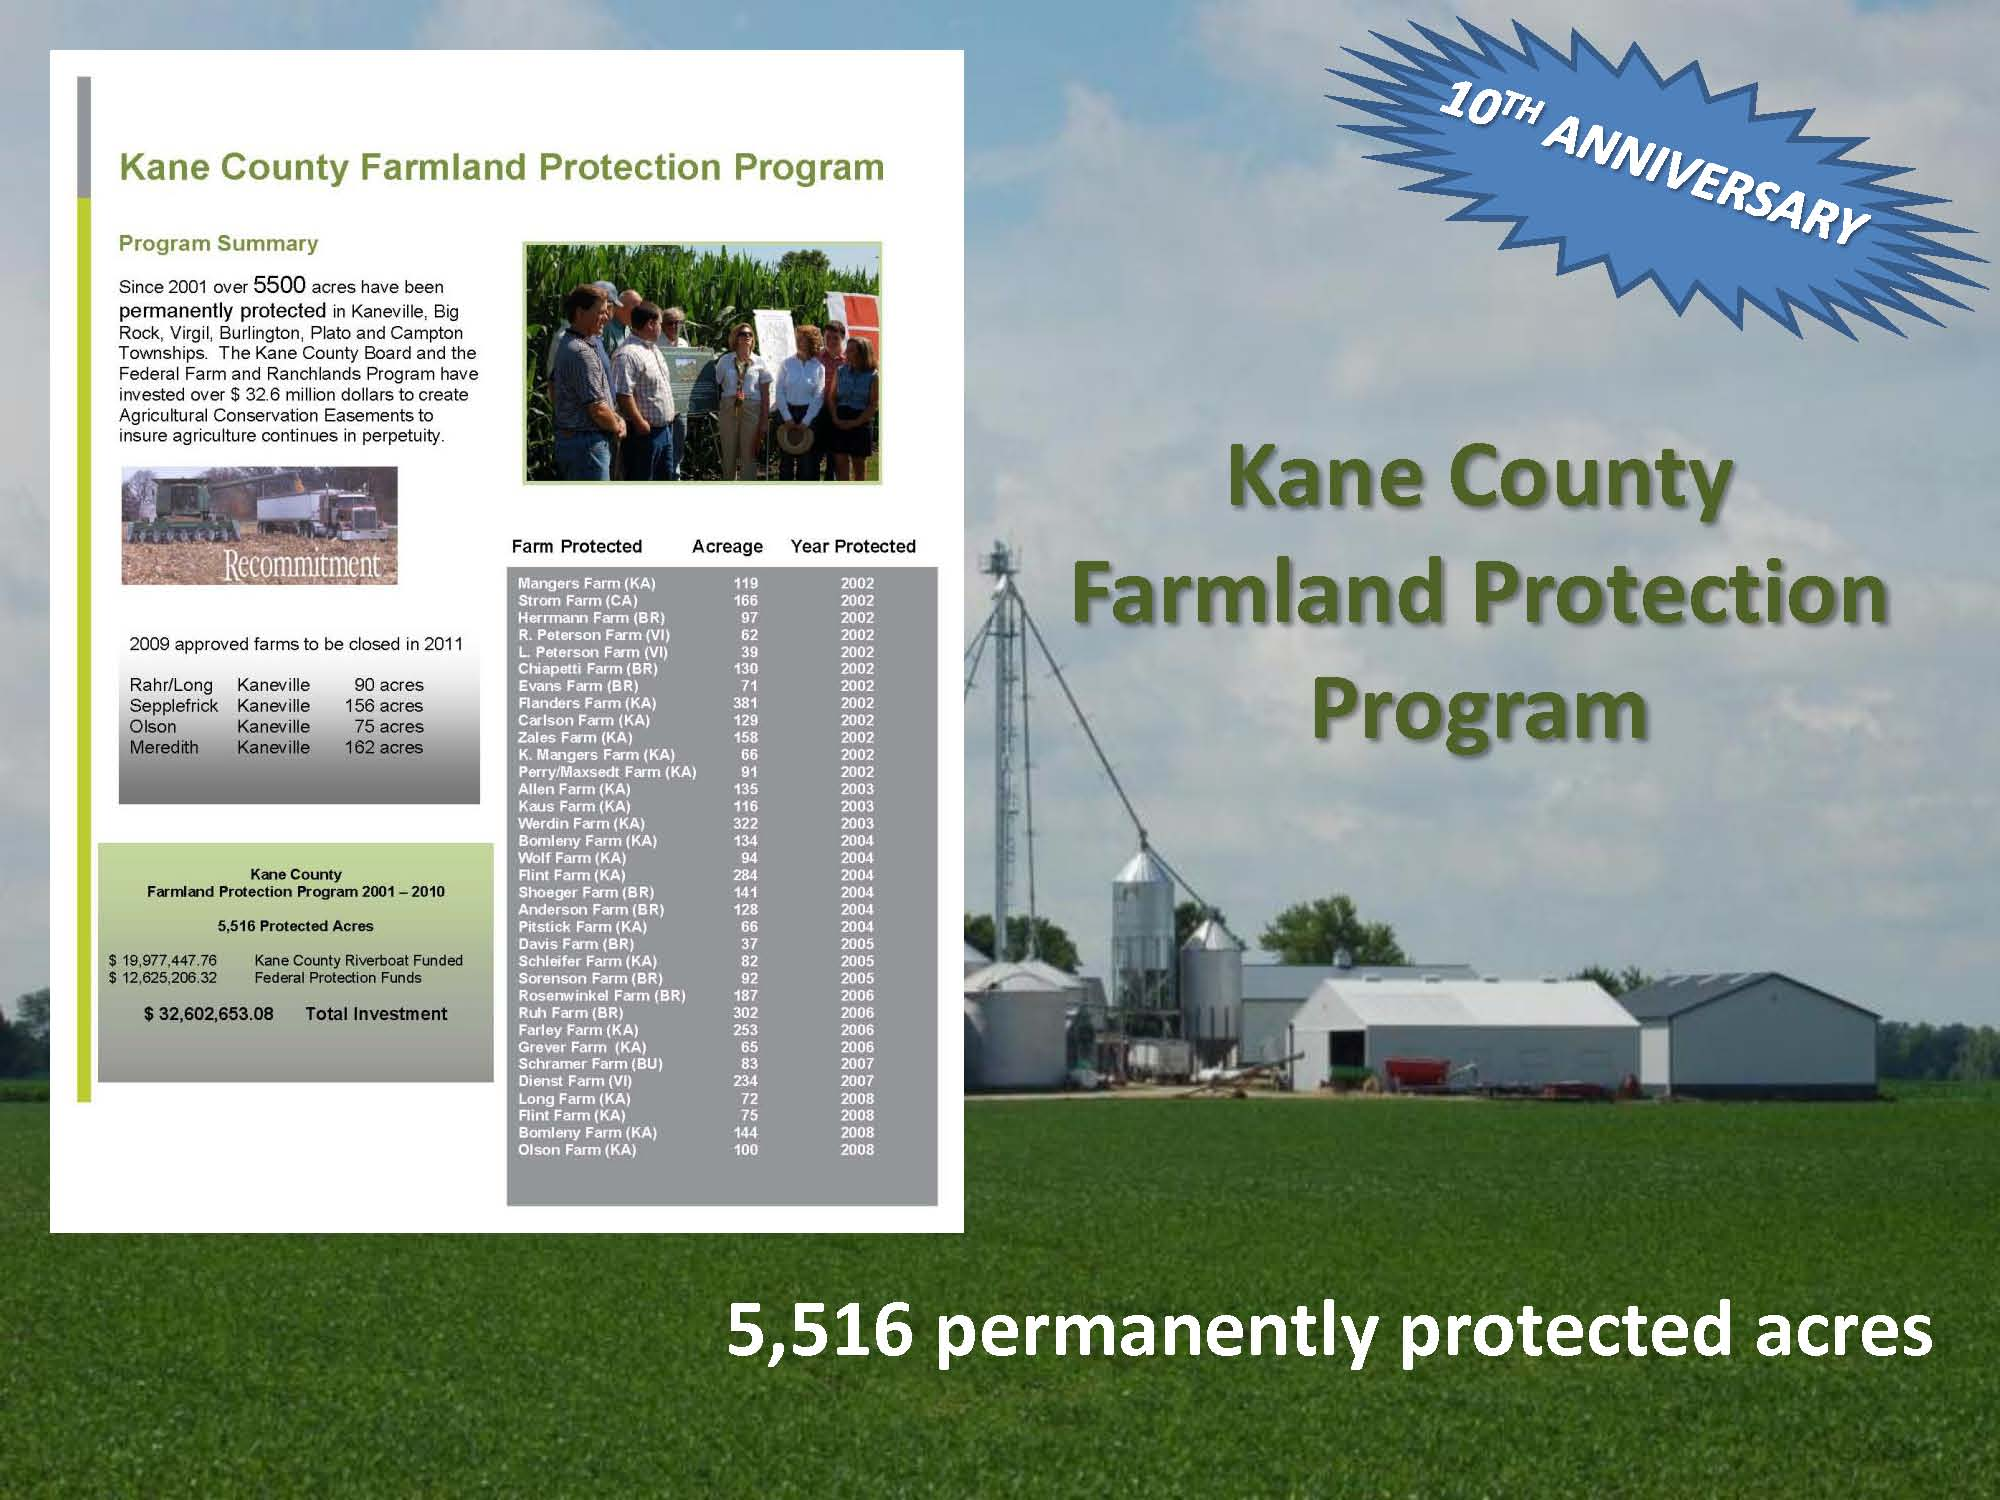 Kane County Farmland Protection Program